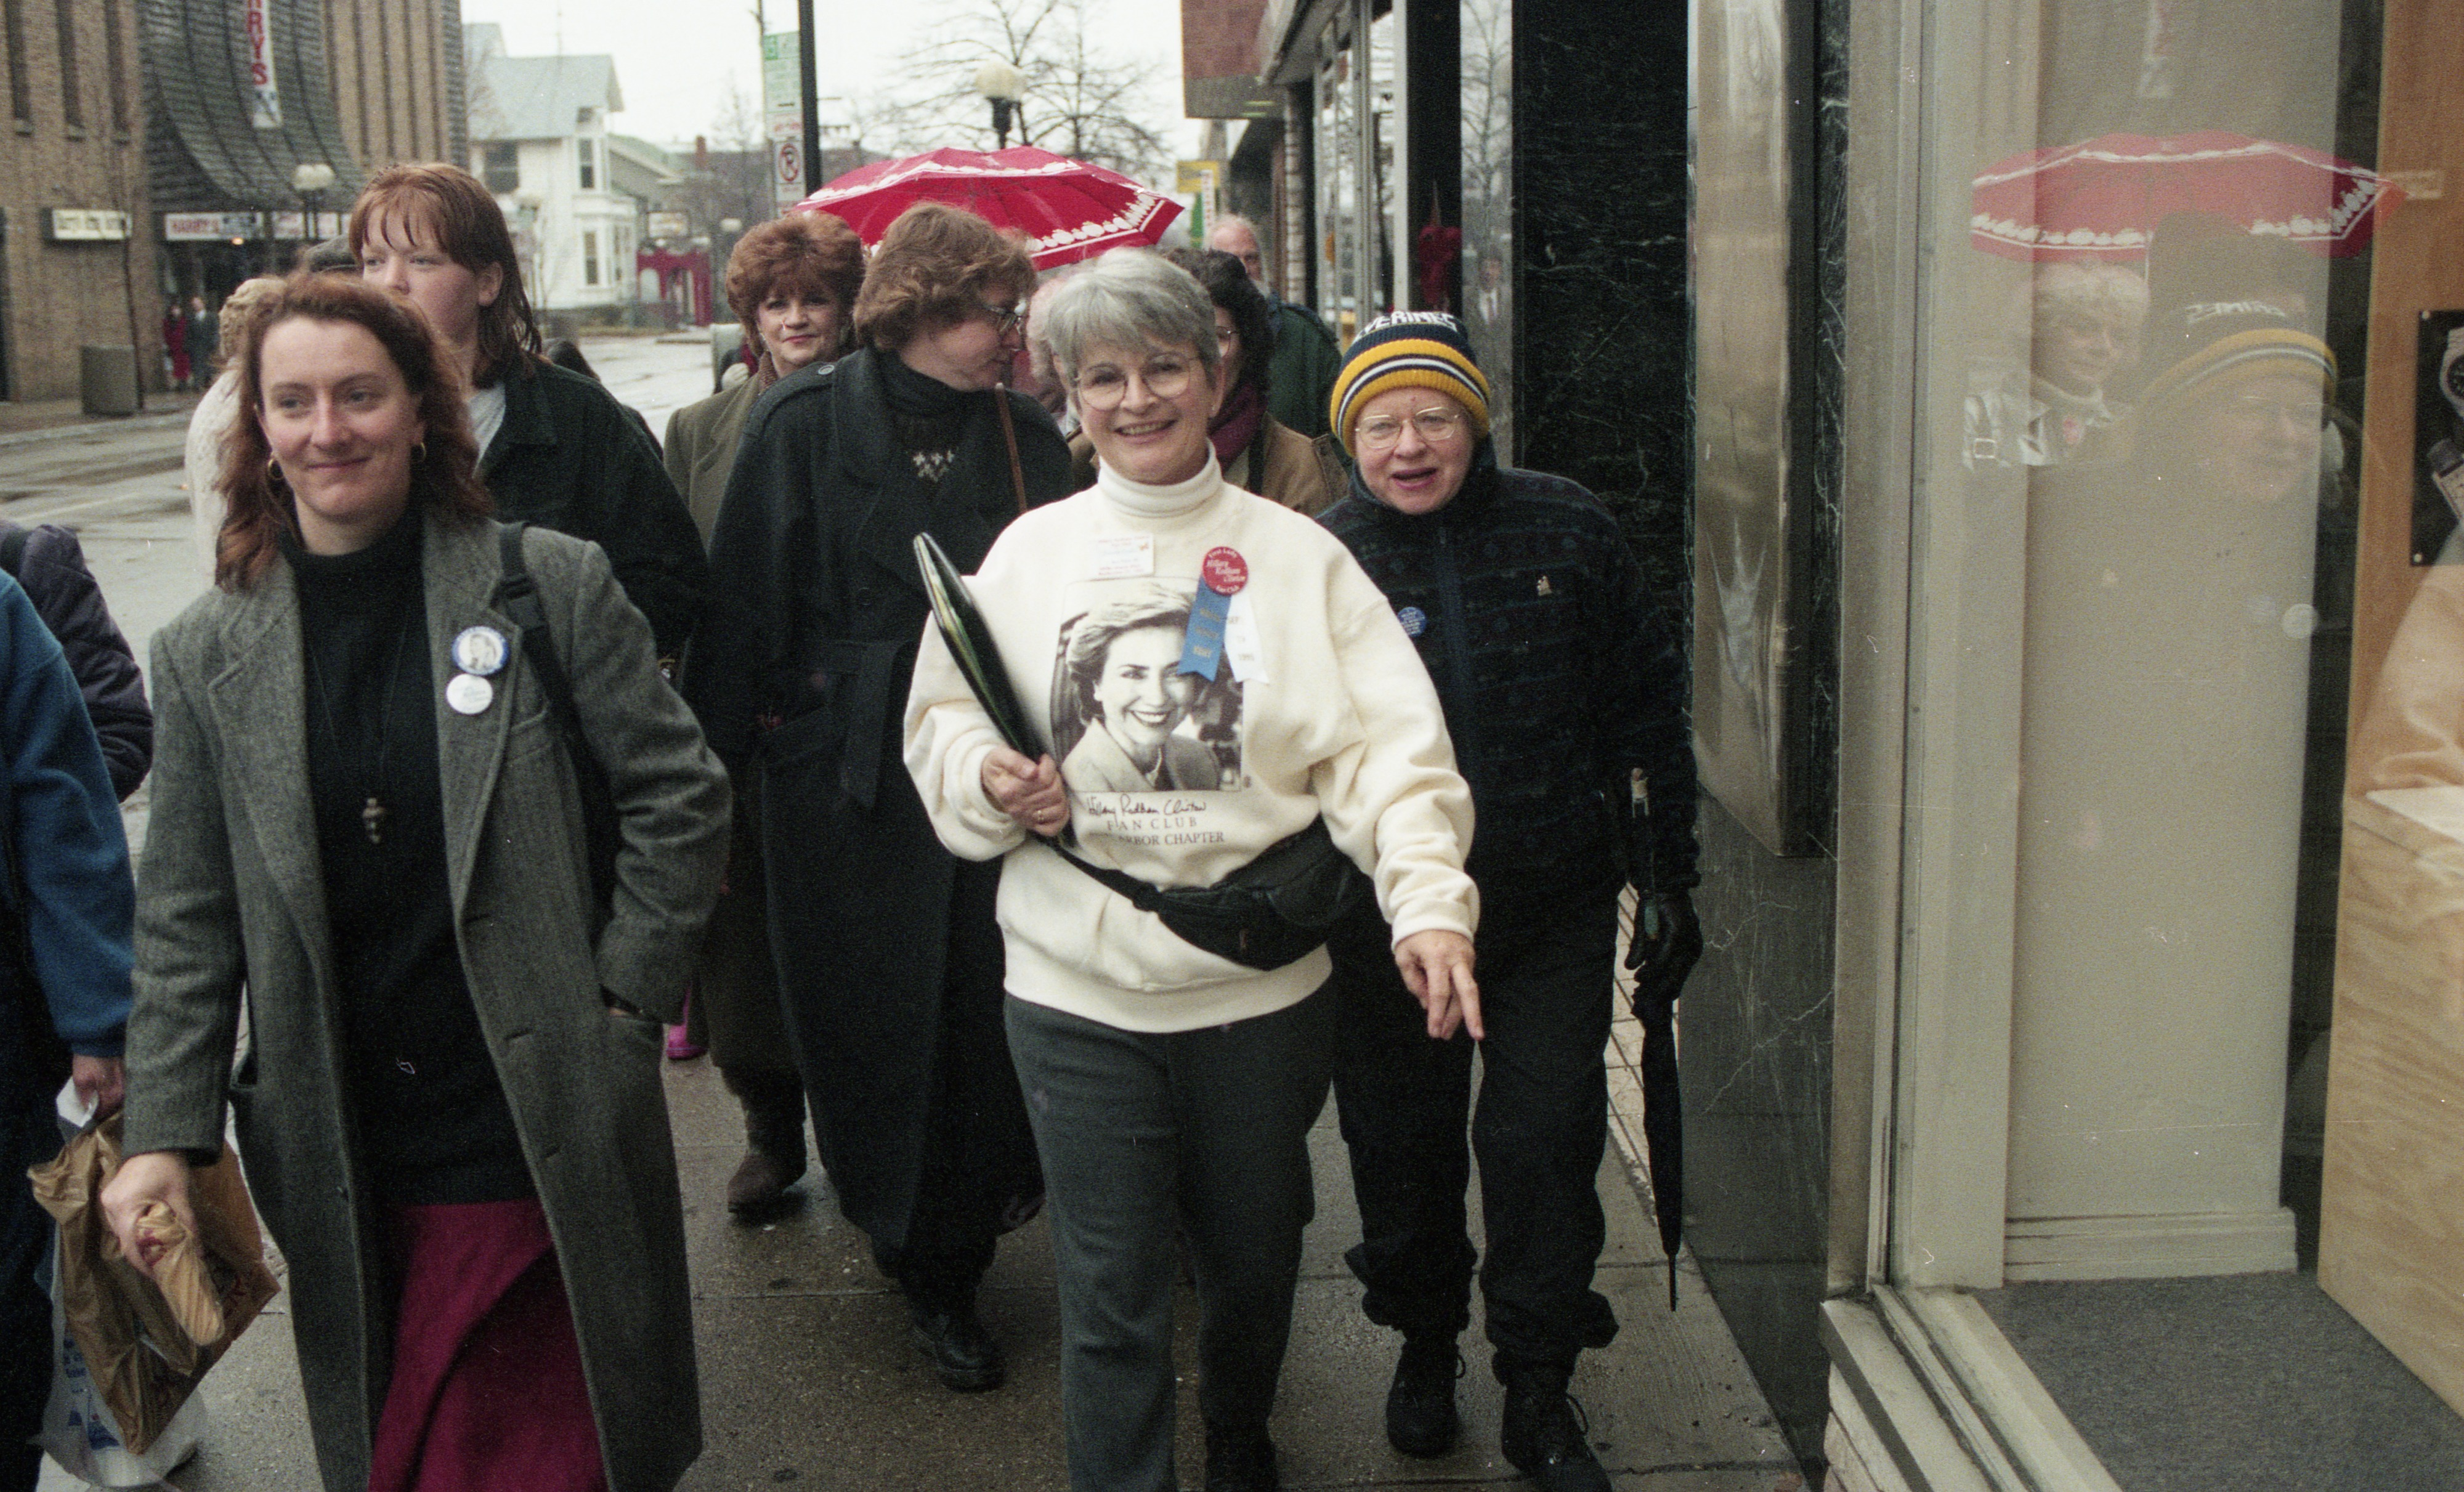 Hillary Clinton Fan Club Arrives At Michigan Theater For Reception, January 1996 image